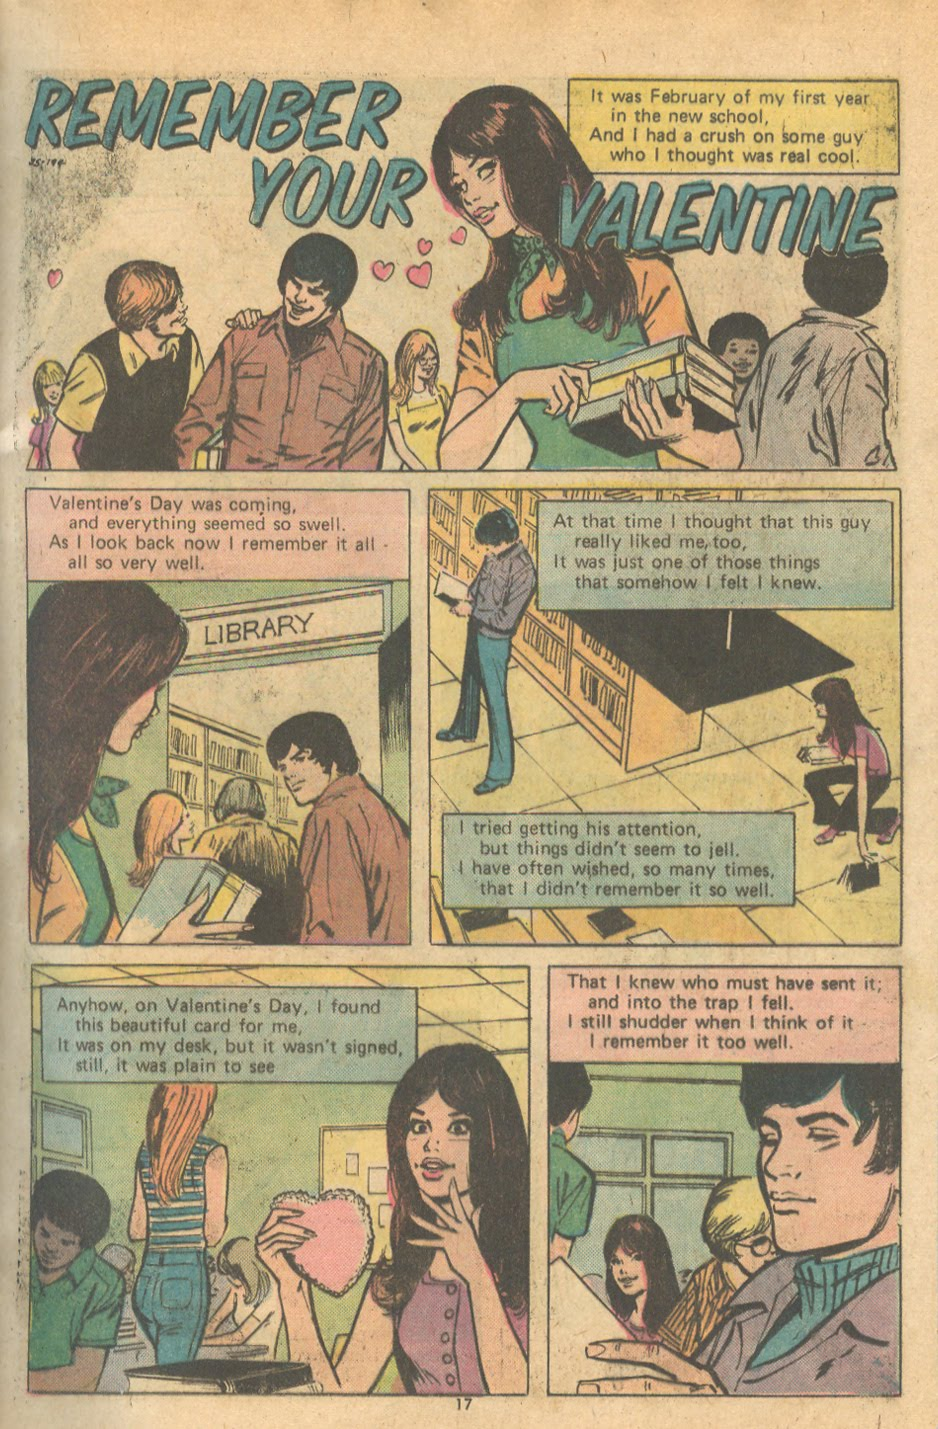 """Remember Your Valentine"" from Young Love #112 (November 1974) with art by the very romantic Winslow Mortimer"